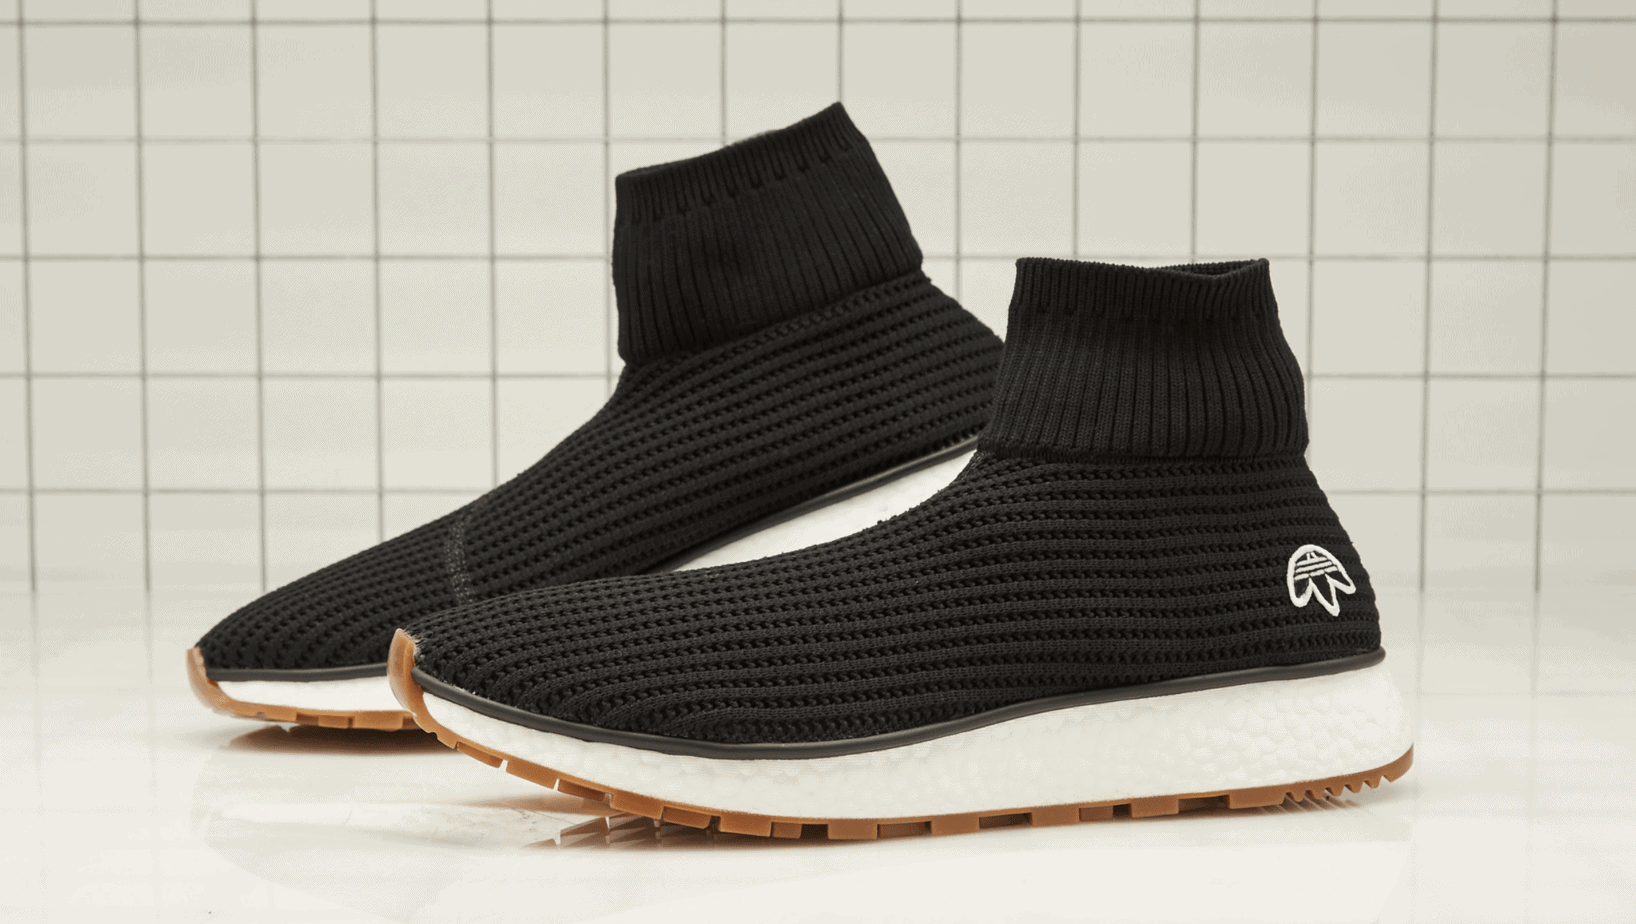 701c0ca46a15 Alexander Wang and adidas are back for the second drop of their Season 3  collection. This time